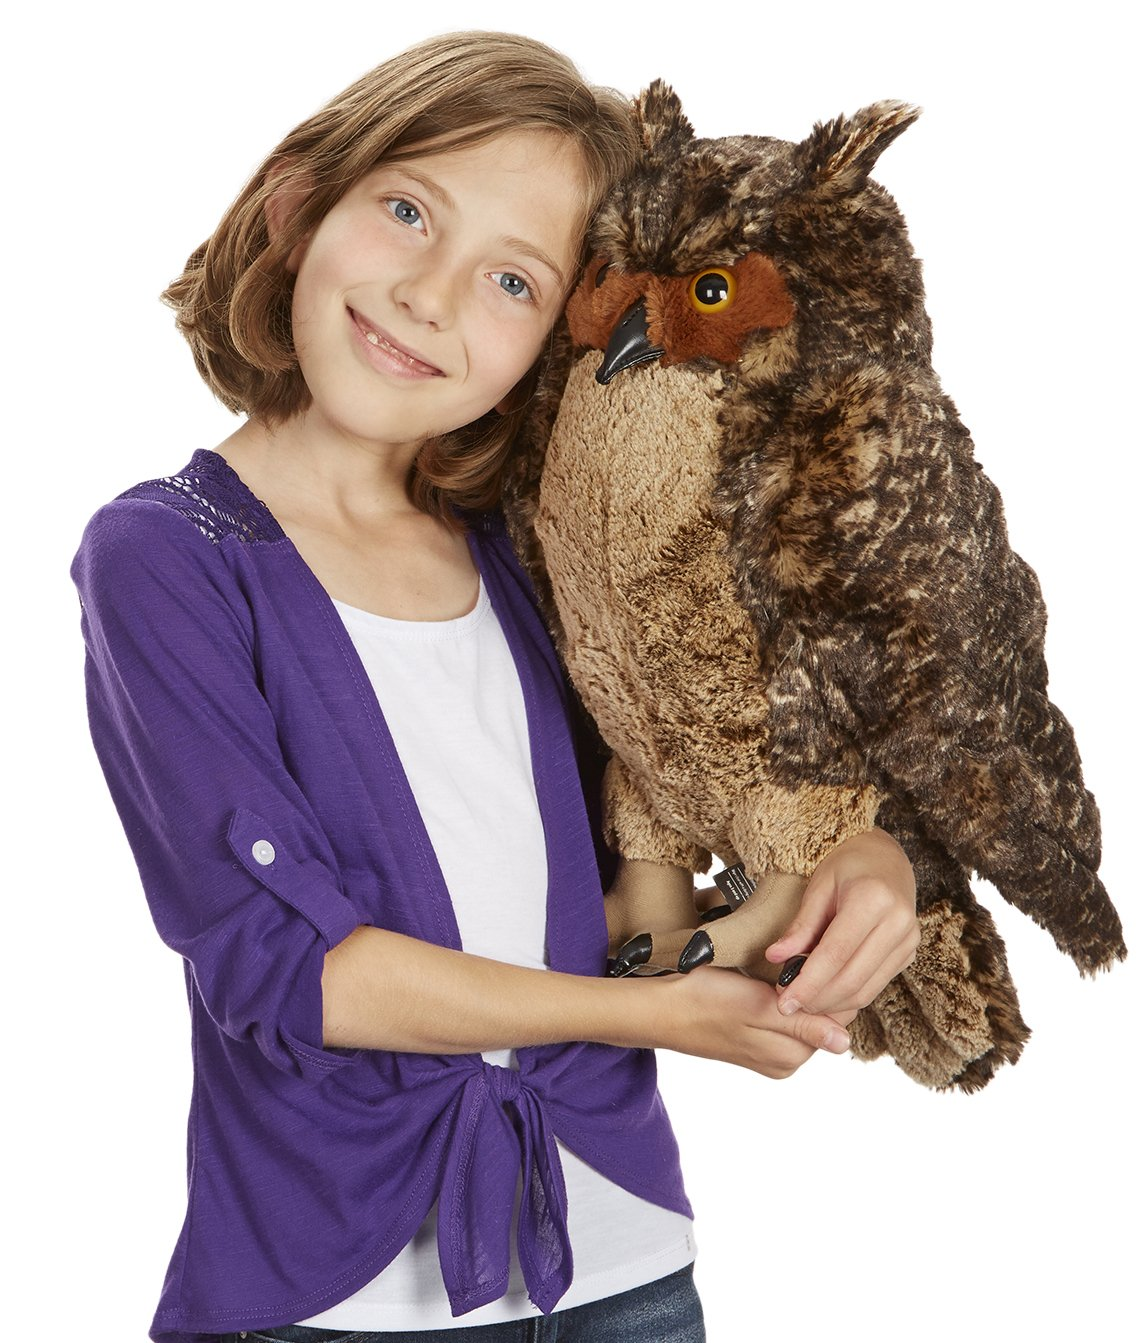 Melissa & Doug Lifelike Plush Owl (Stuffed Animal & Plush Toy, Crafted With Care, Soft Fabric, 17'' H x 14'' W x 17'' L) by Melissa & Doug